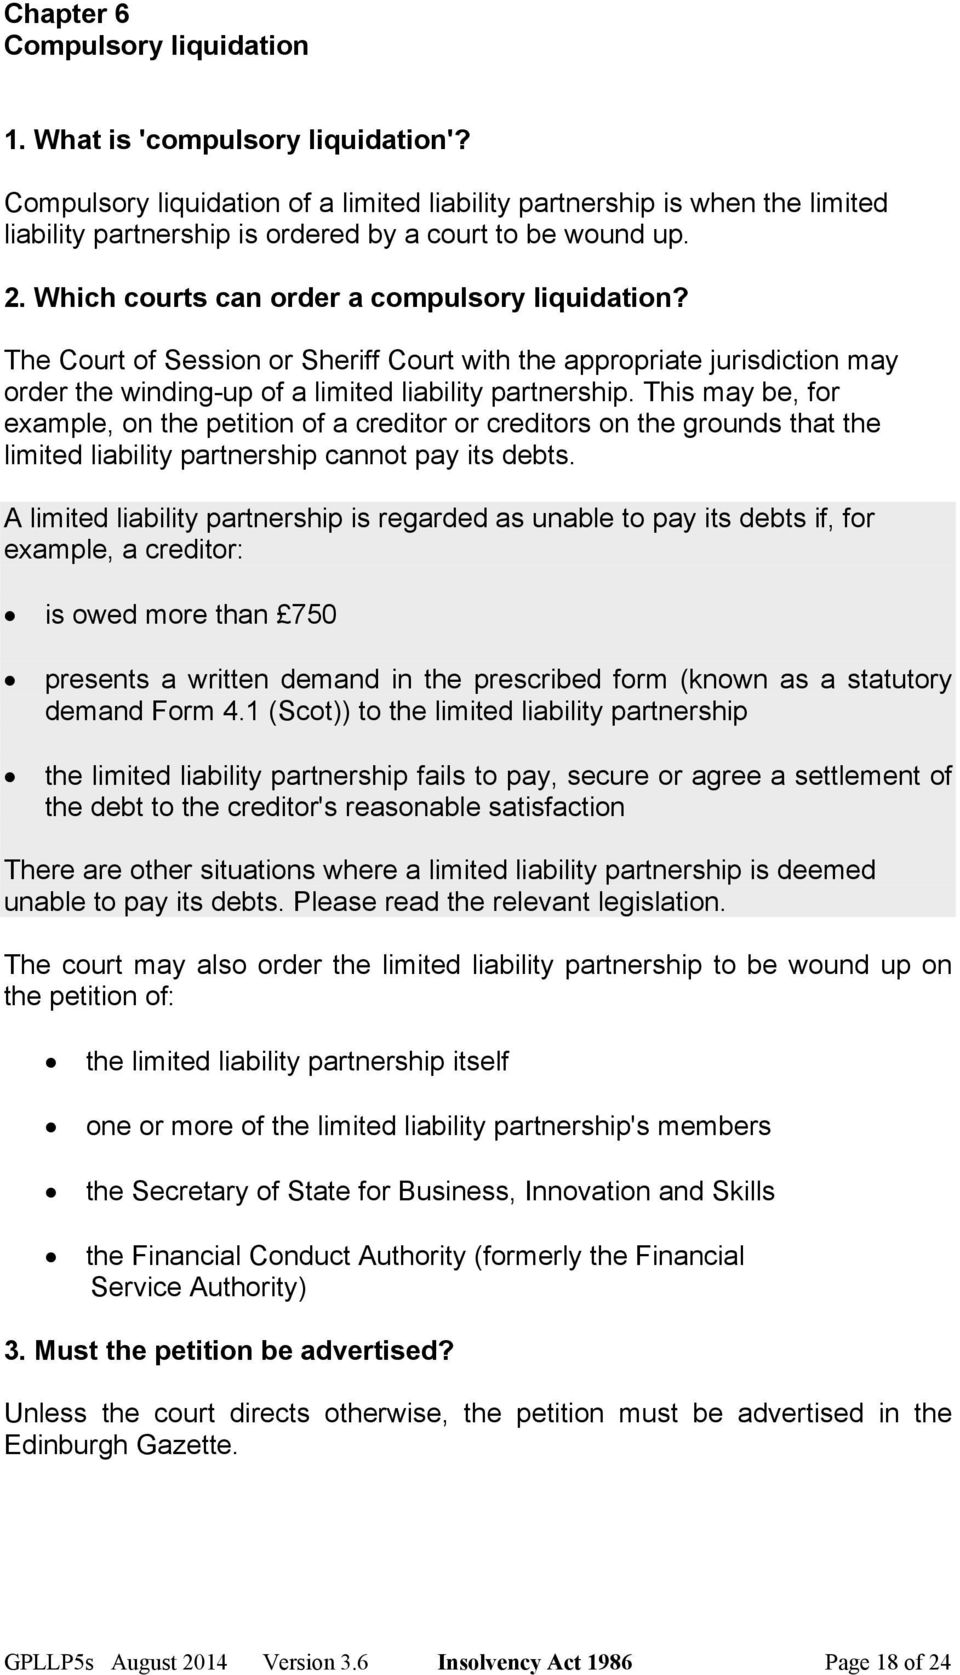 The Court of Session or Sheriff Court with the appropriate jurisdiction may order the winding-up of a limited liability partnership.